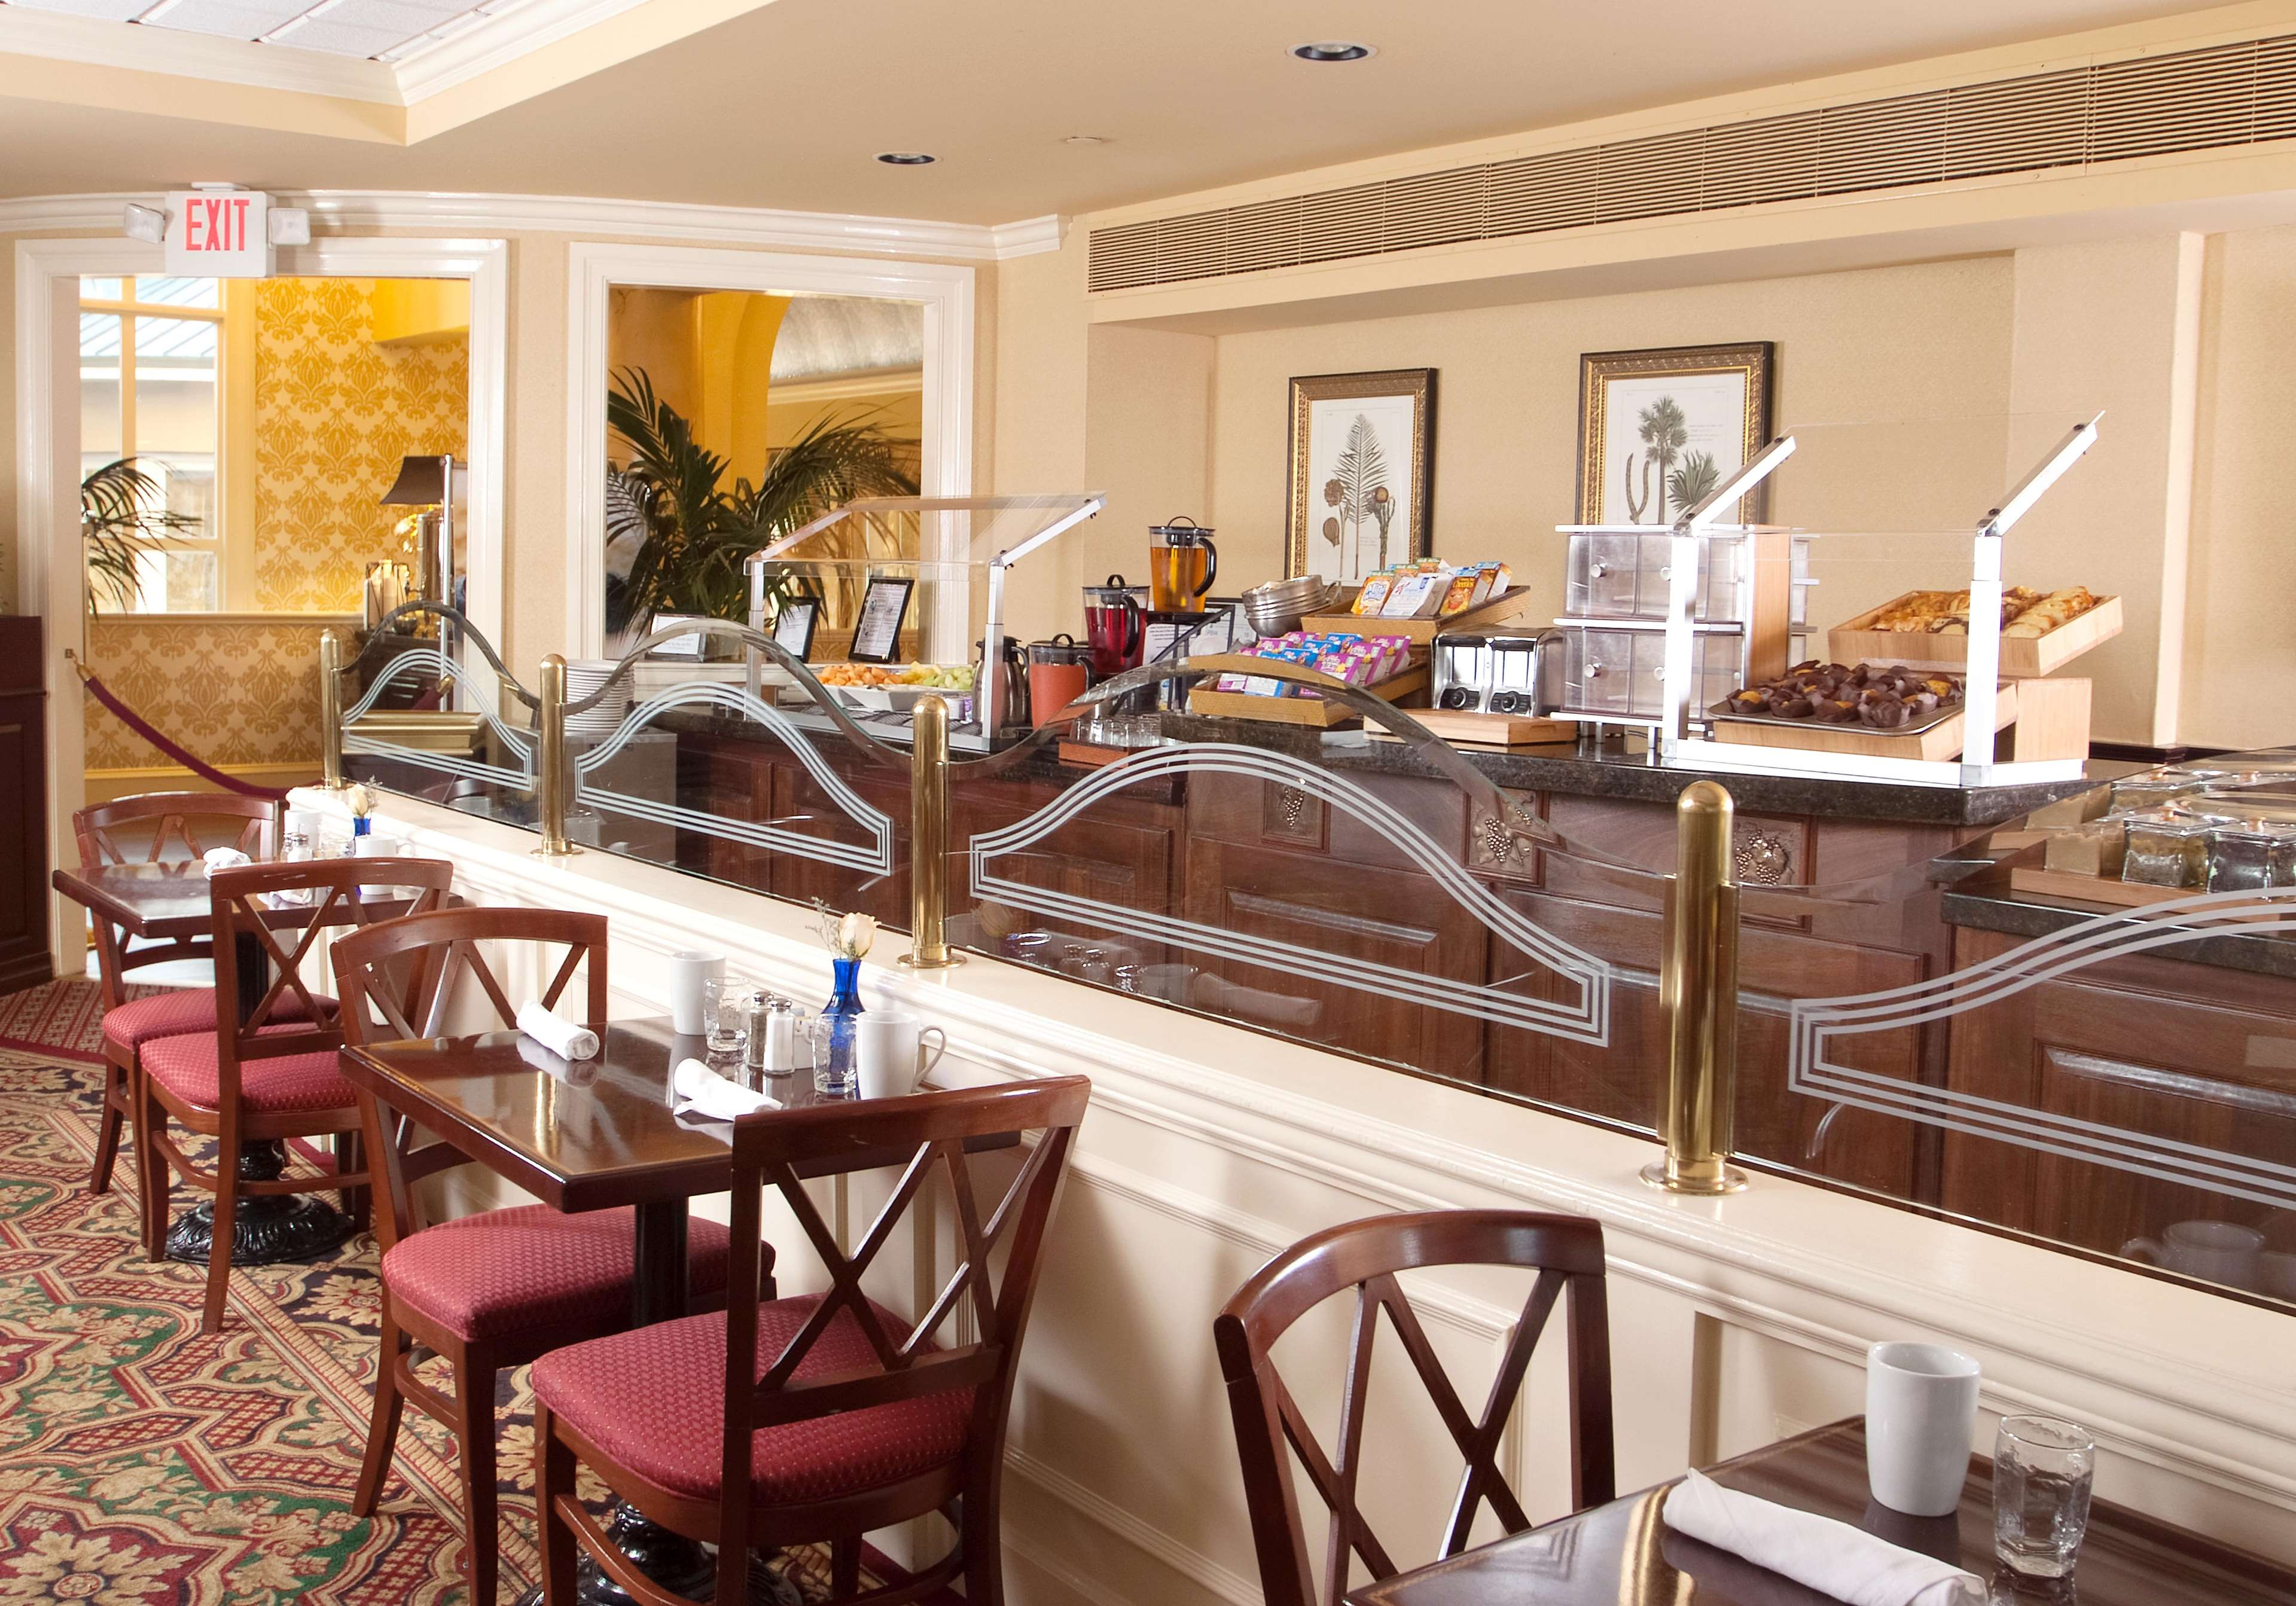 DoubleTree by Hilton Hotel & Suites Charleston - Historic District image 9